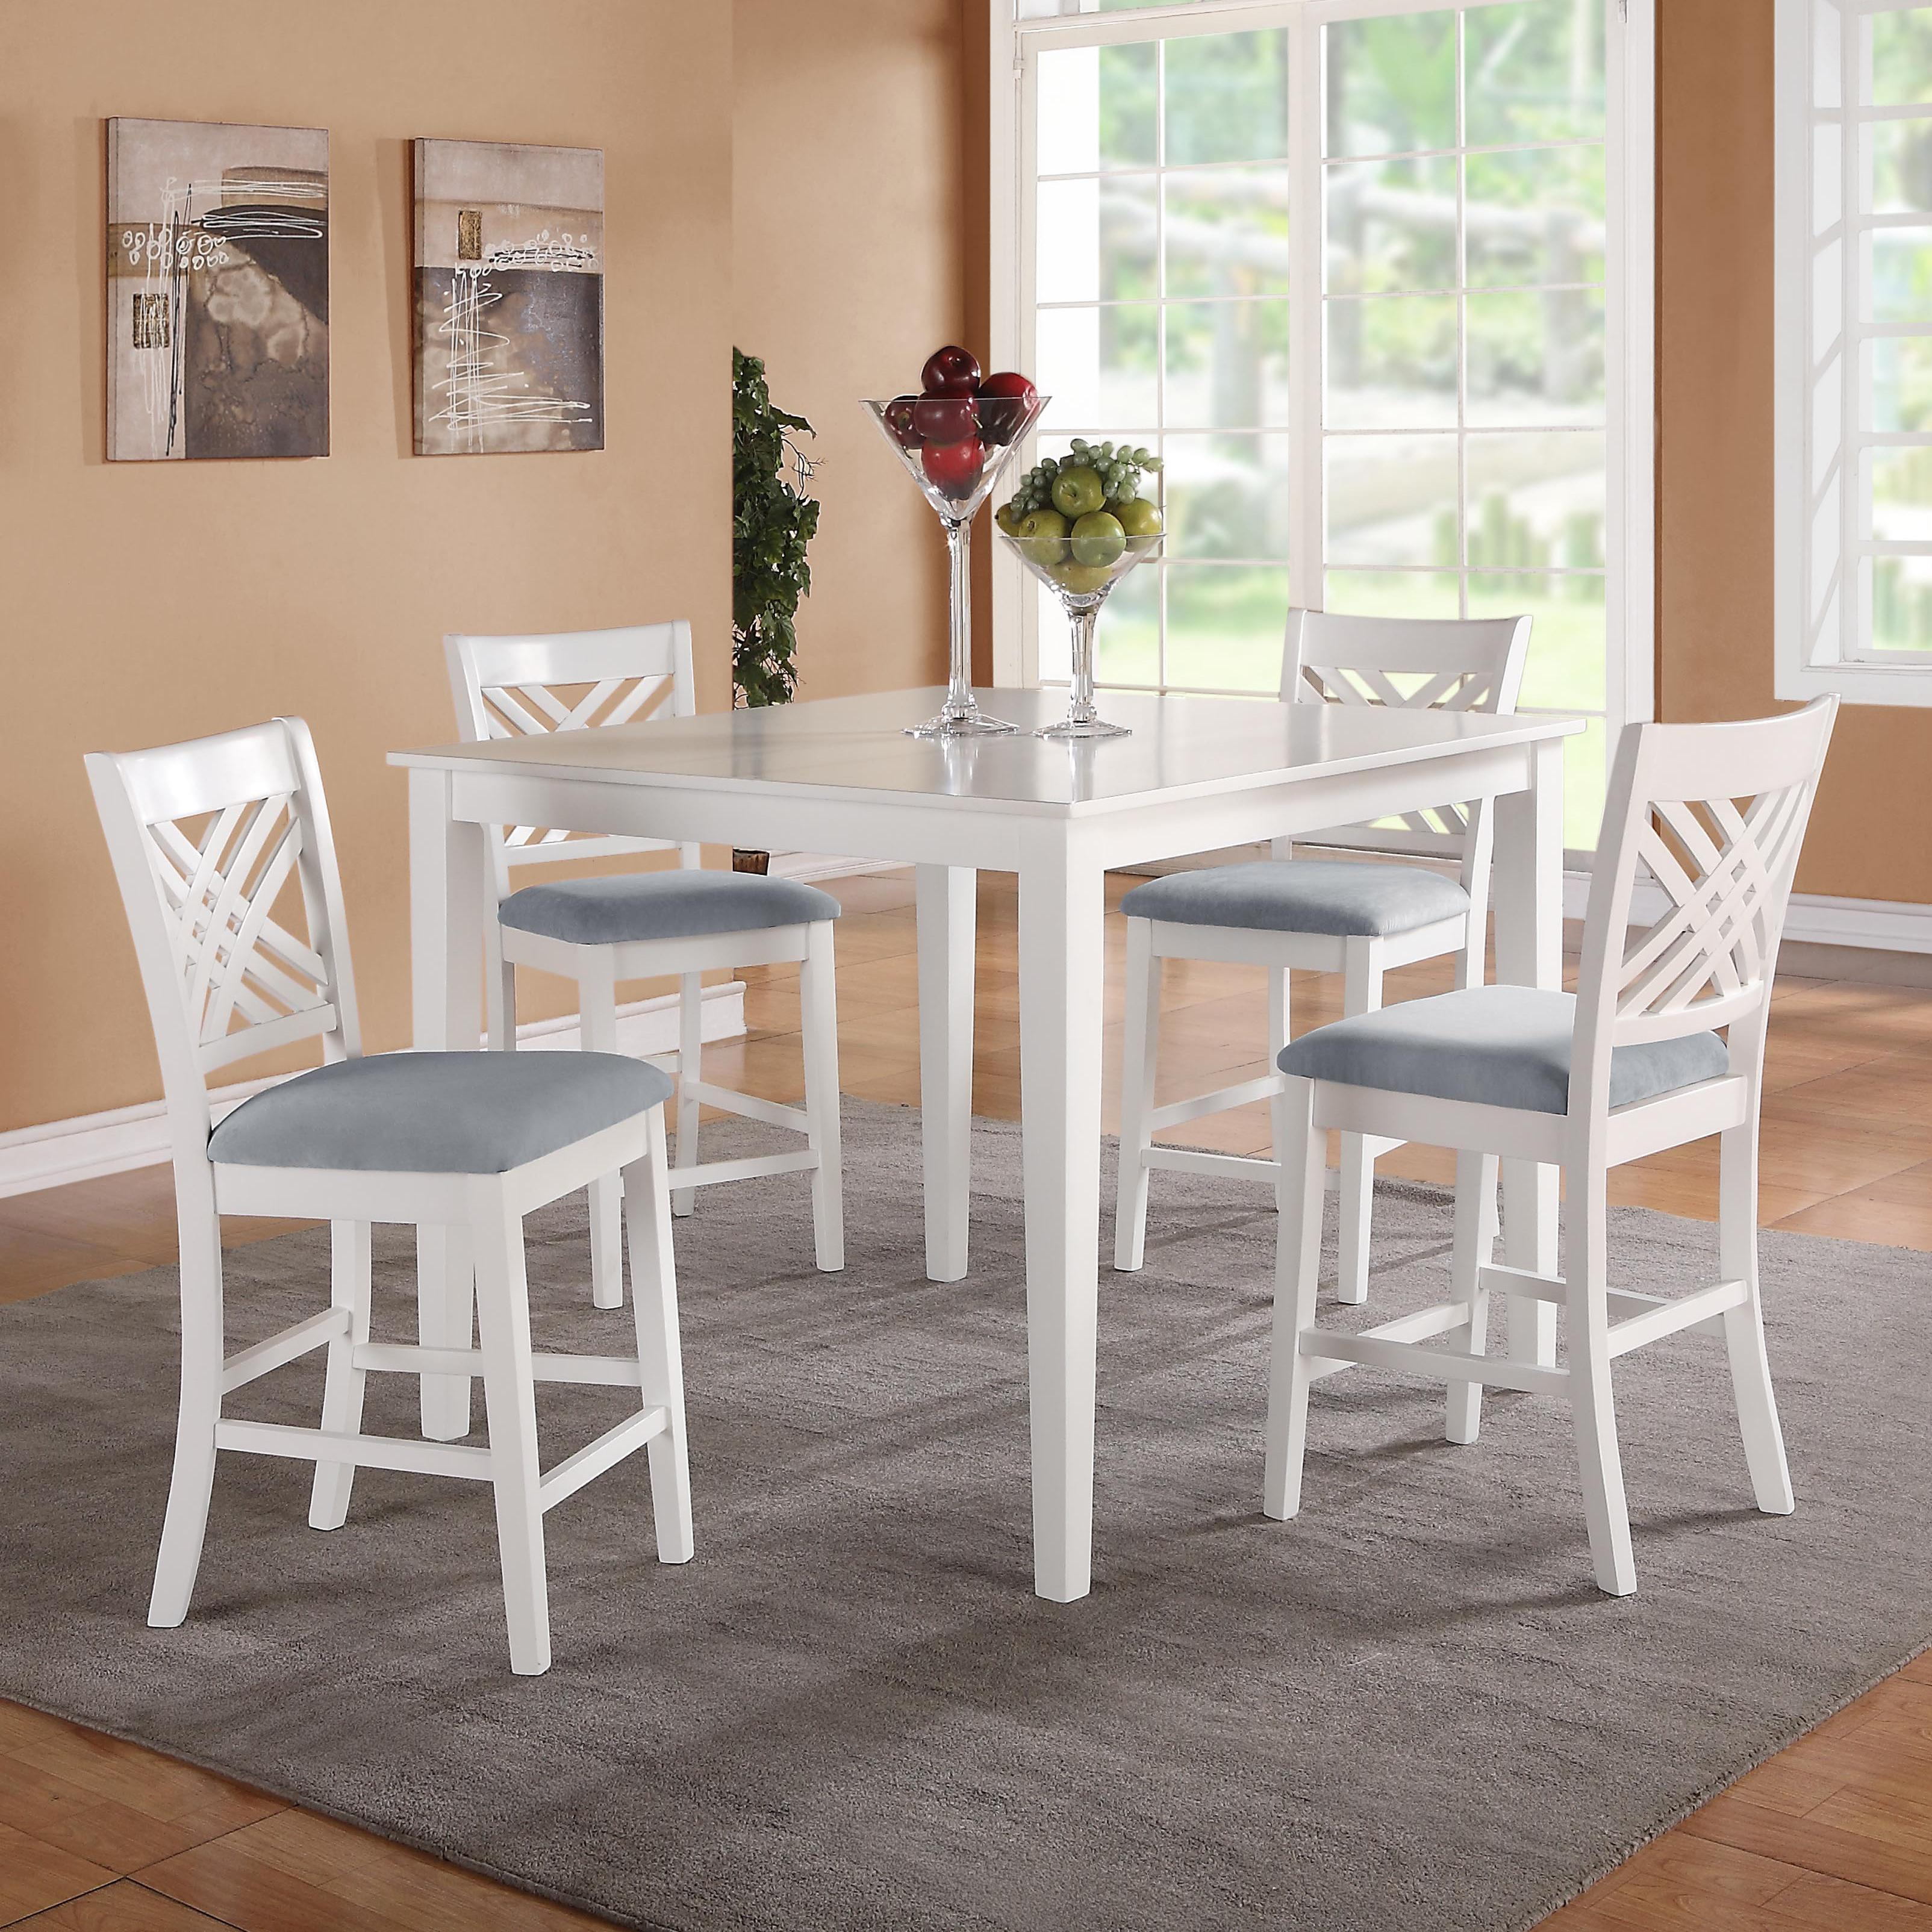 Standard Furniture Brooklyn Dining Table Set - Item Number: 18292